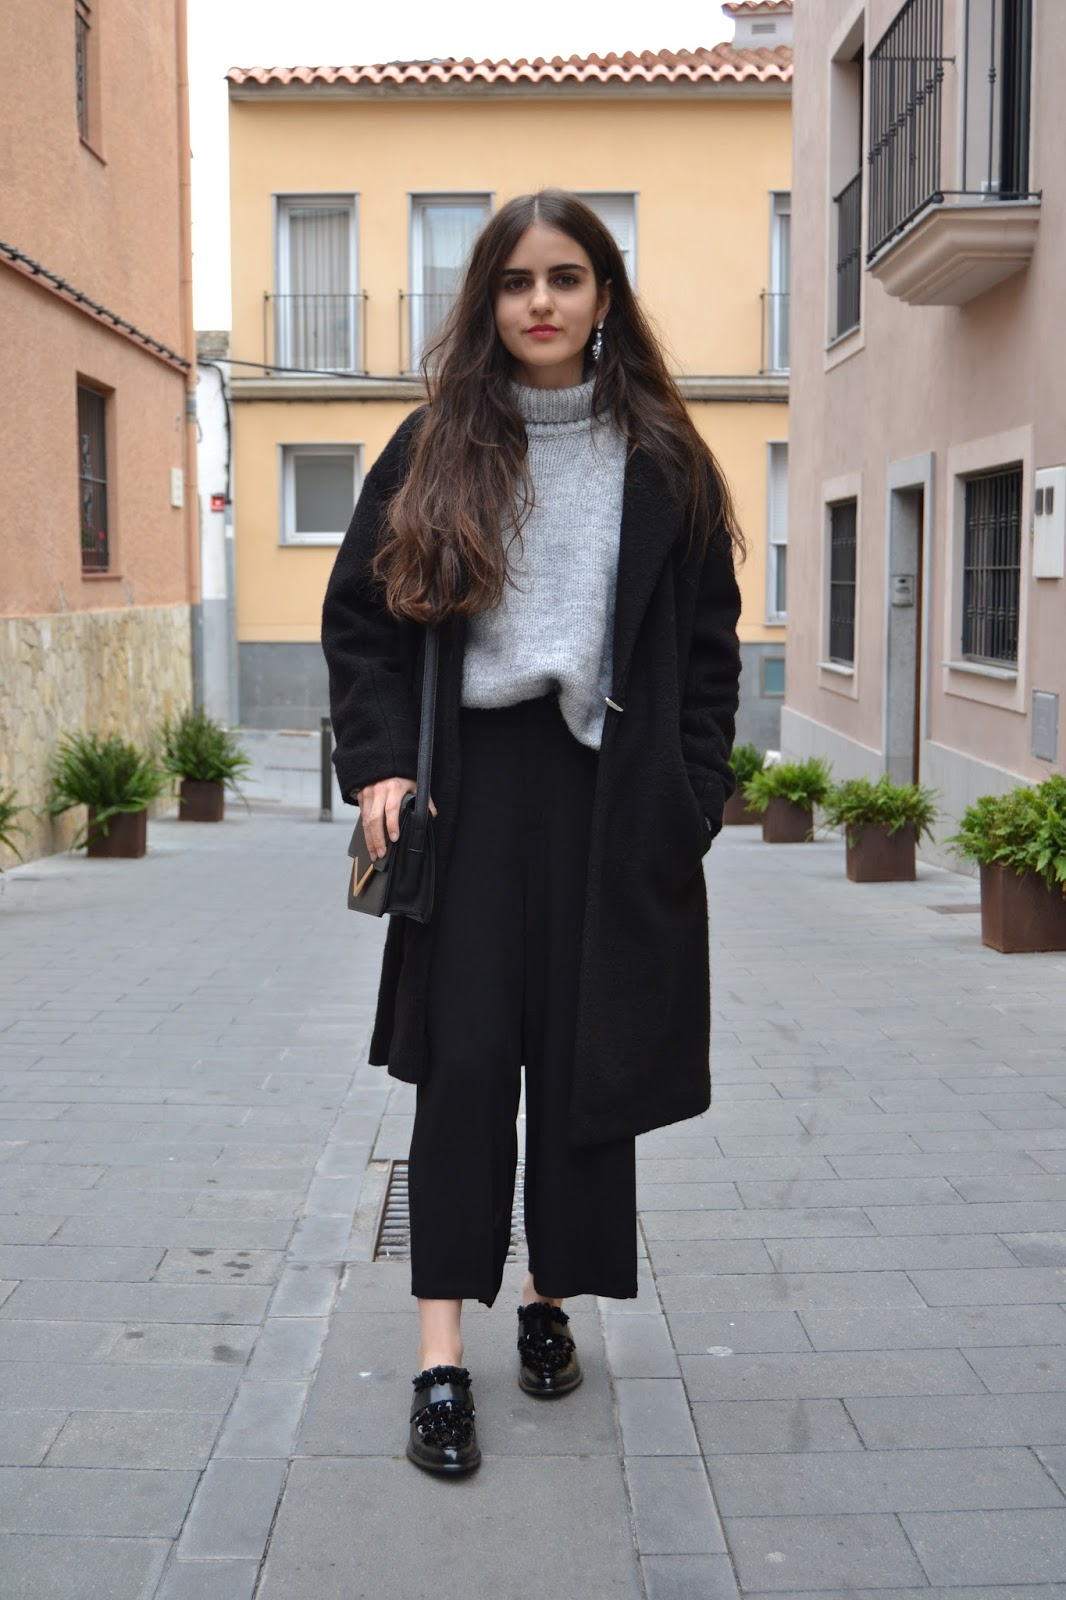 outfit with culottes and oversized coat